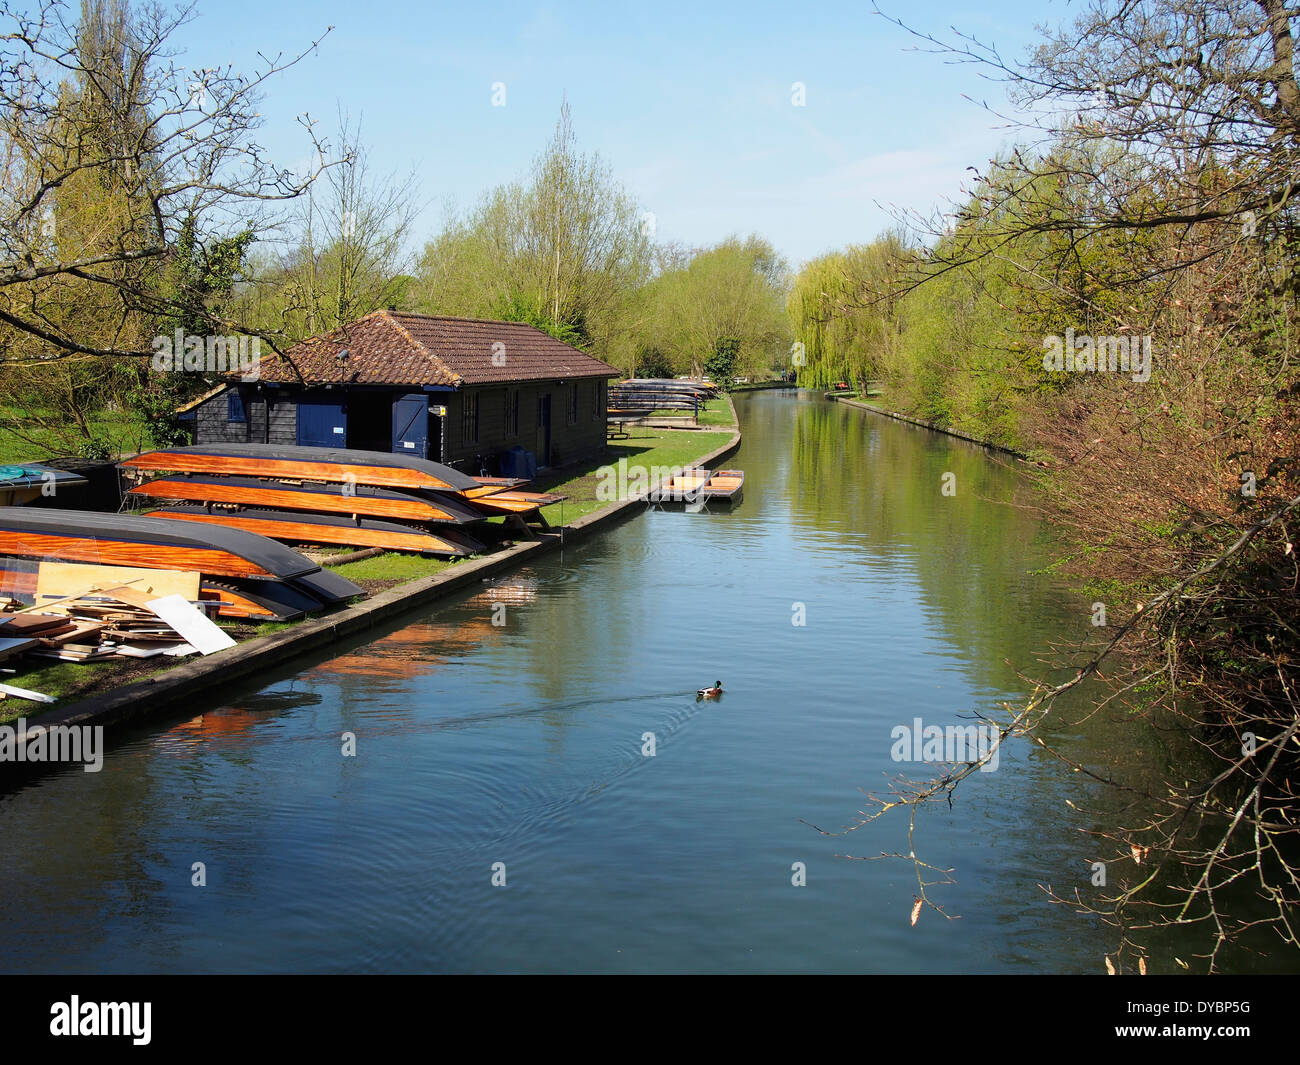 A quiet and tranquil section of the River Cam by Coe Fen in the centre of Cambridge, England with punts hauled out of the water. - Stock Image